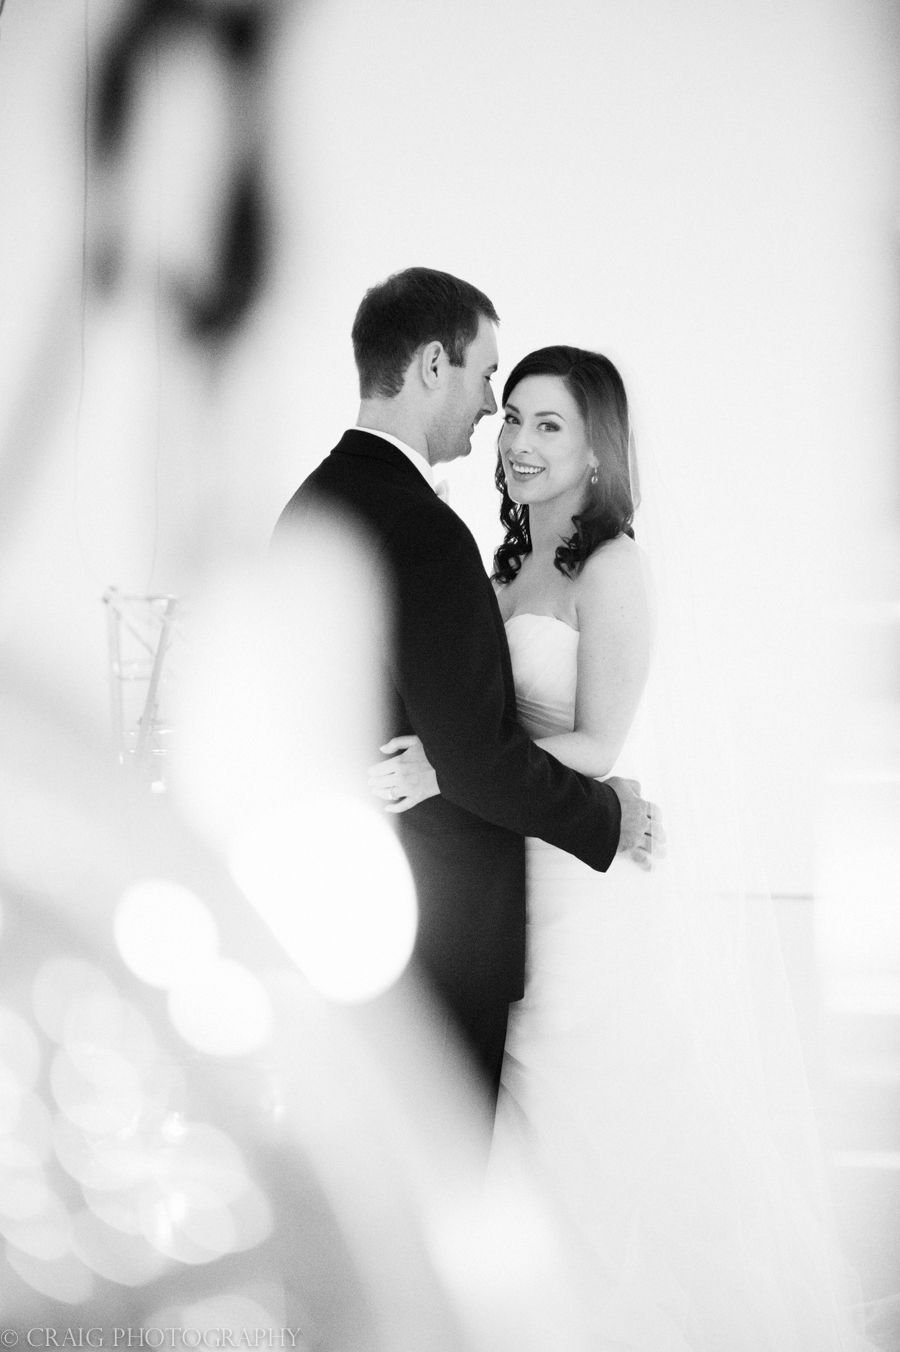 Carnegie Museum of Pittsburgh Weddings and Receptions. Craig Photography. www.craig-photography.com